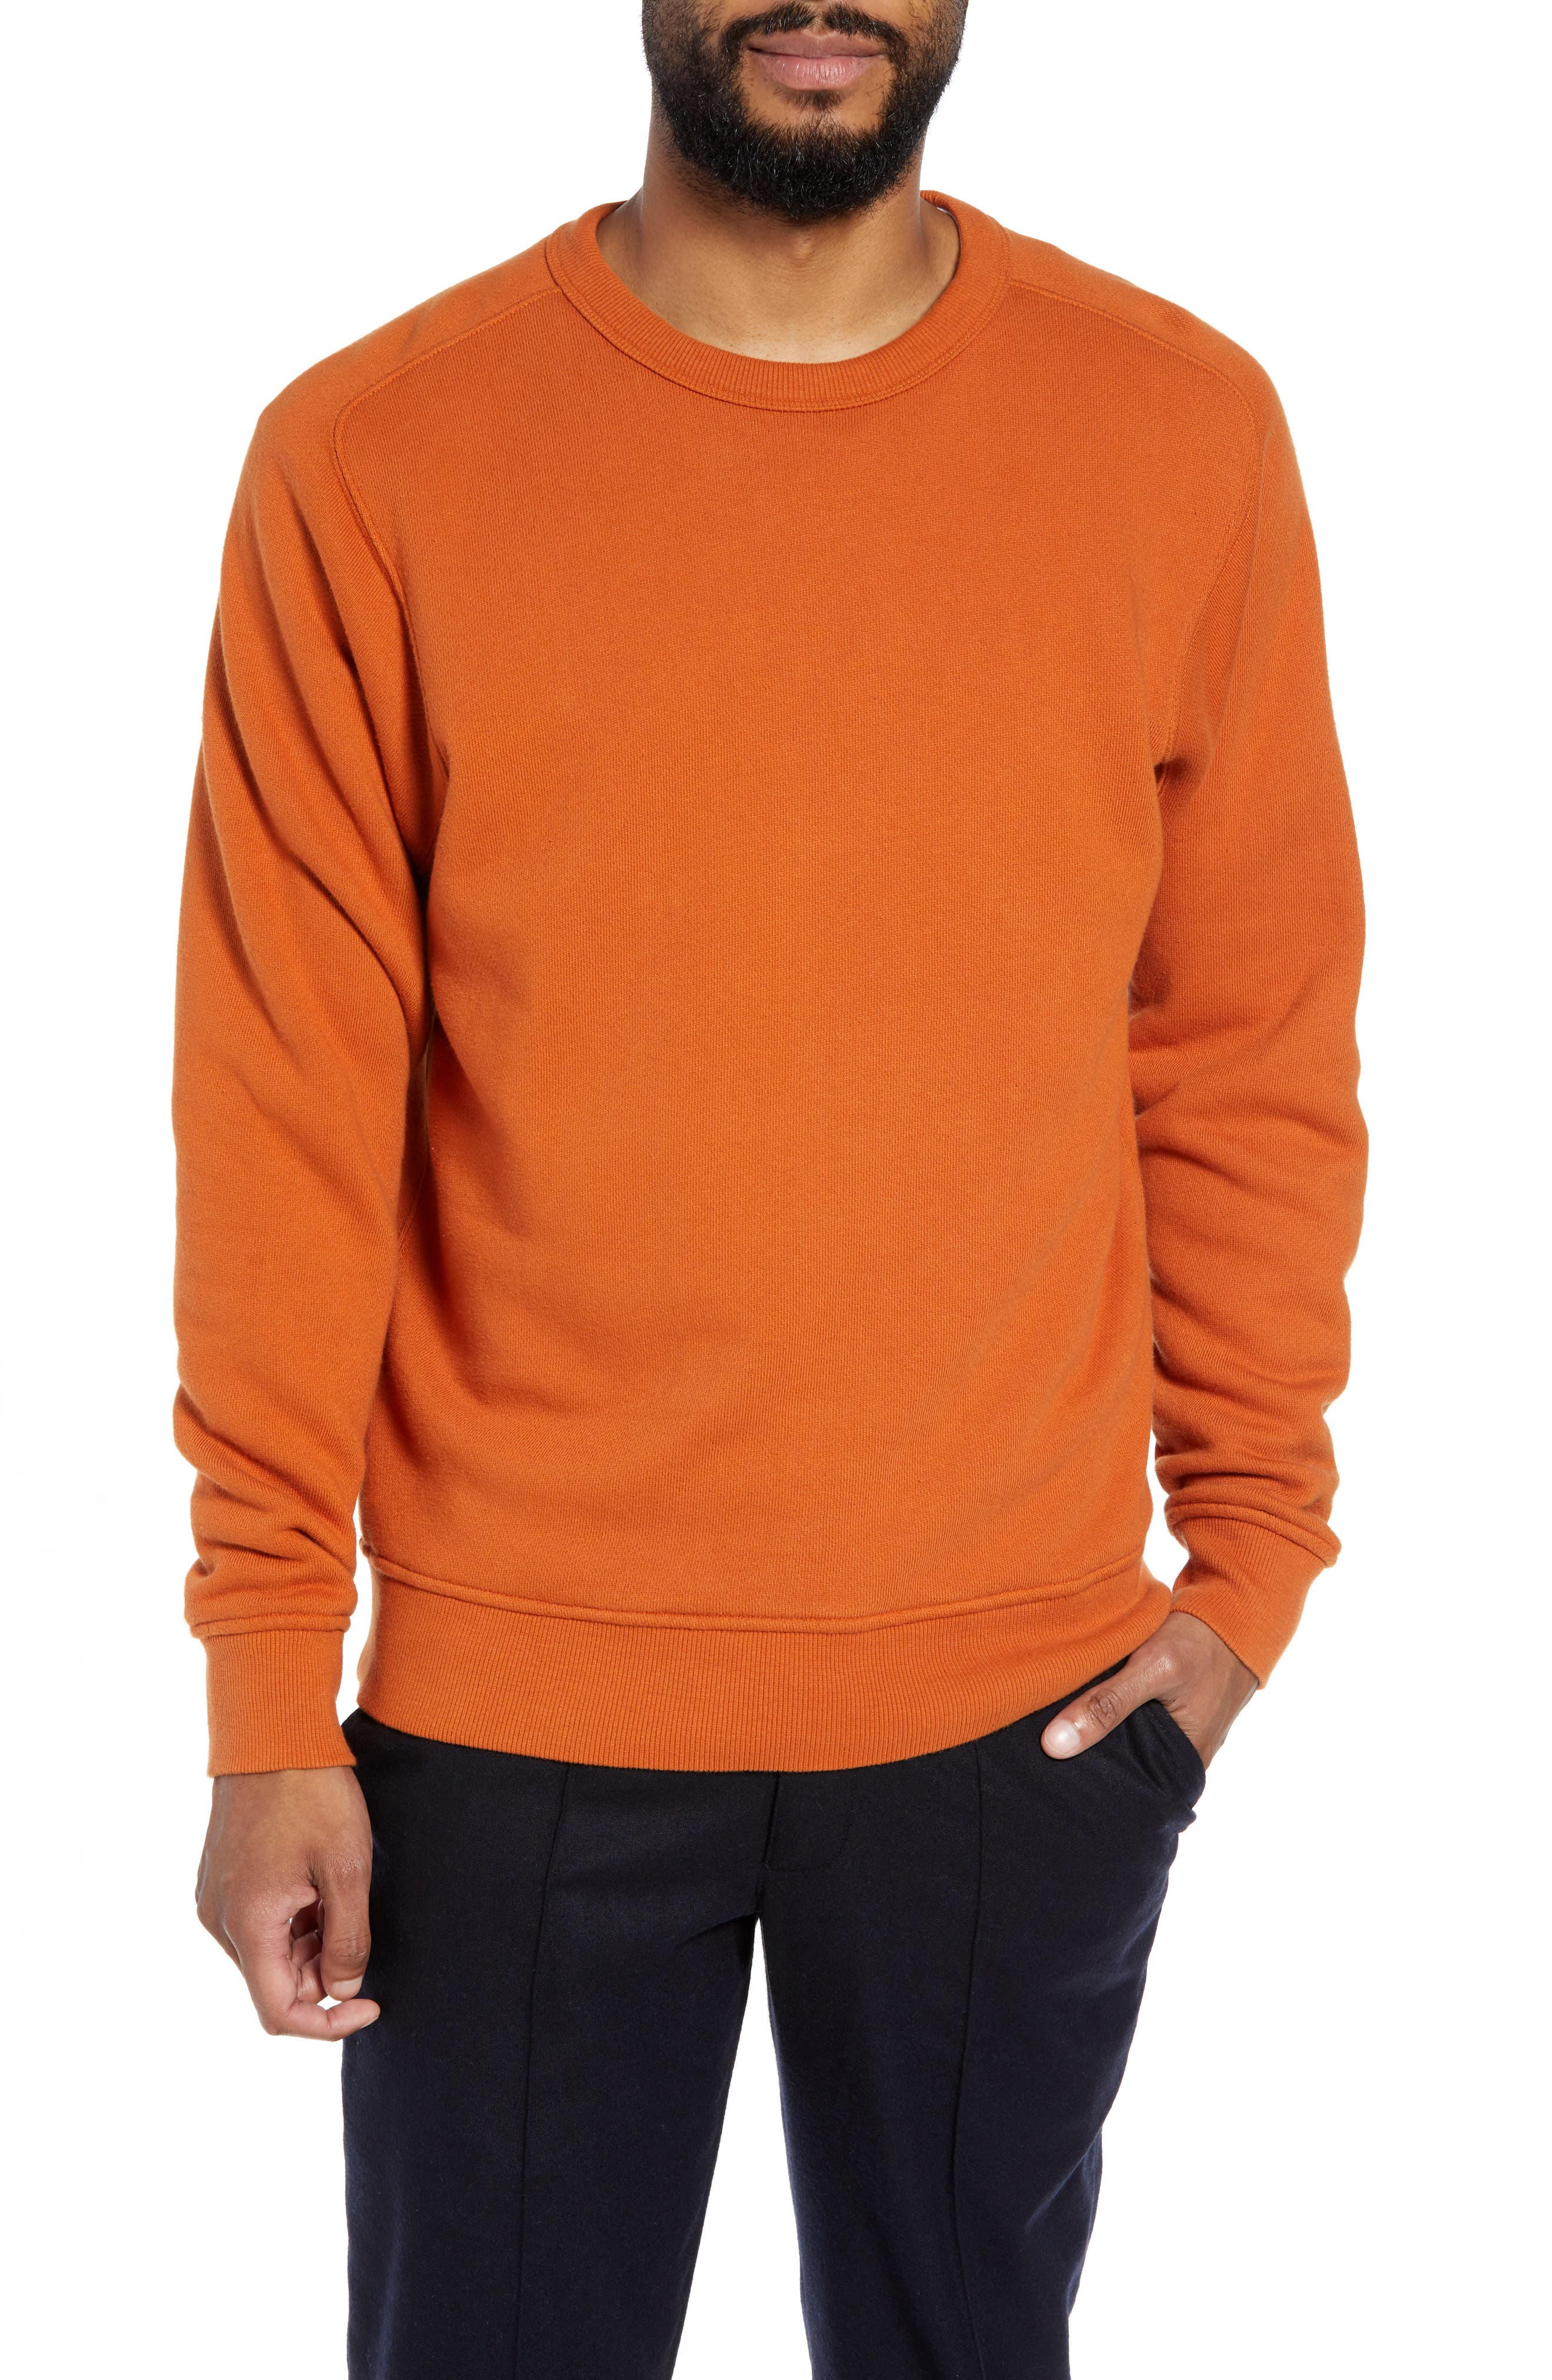 Almost Grown Crewneck Sweatshirt,                         Main,                         color, RUST